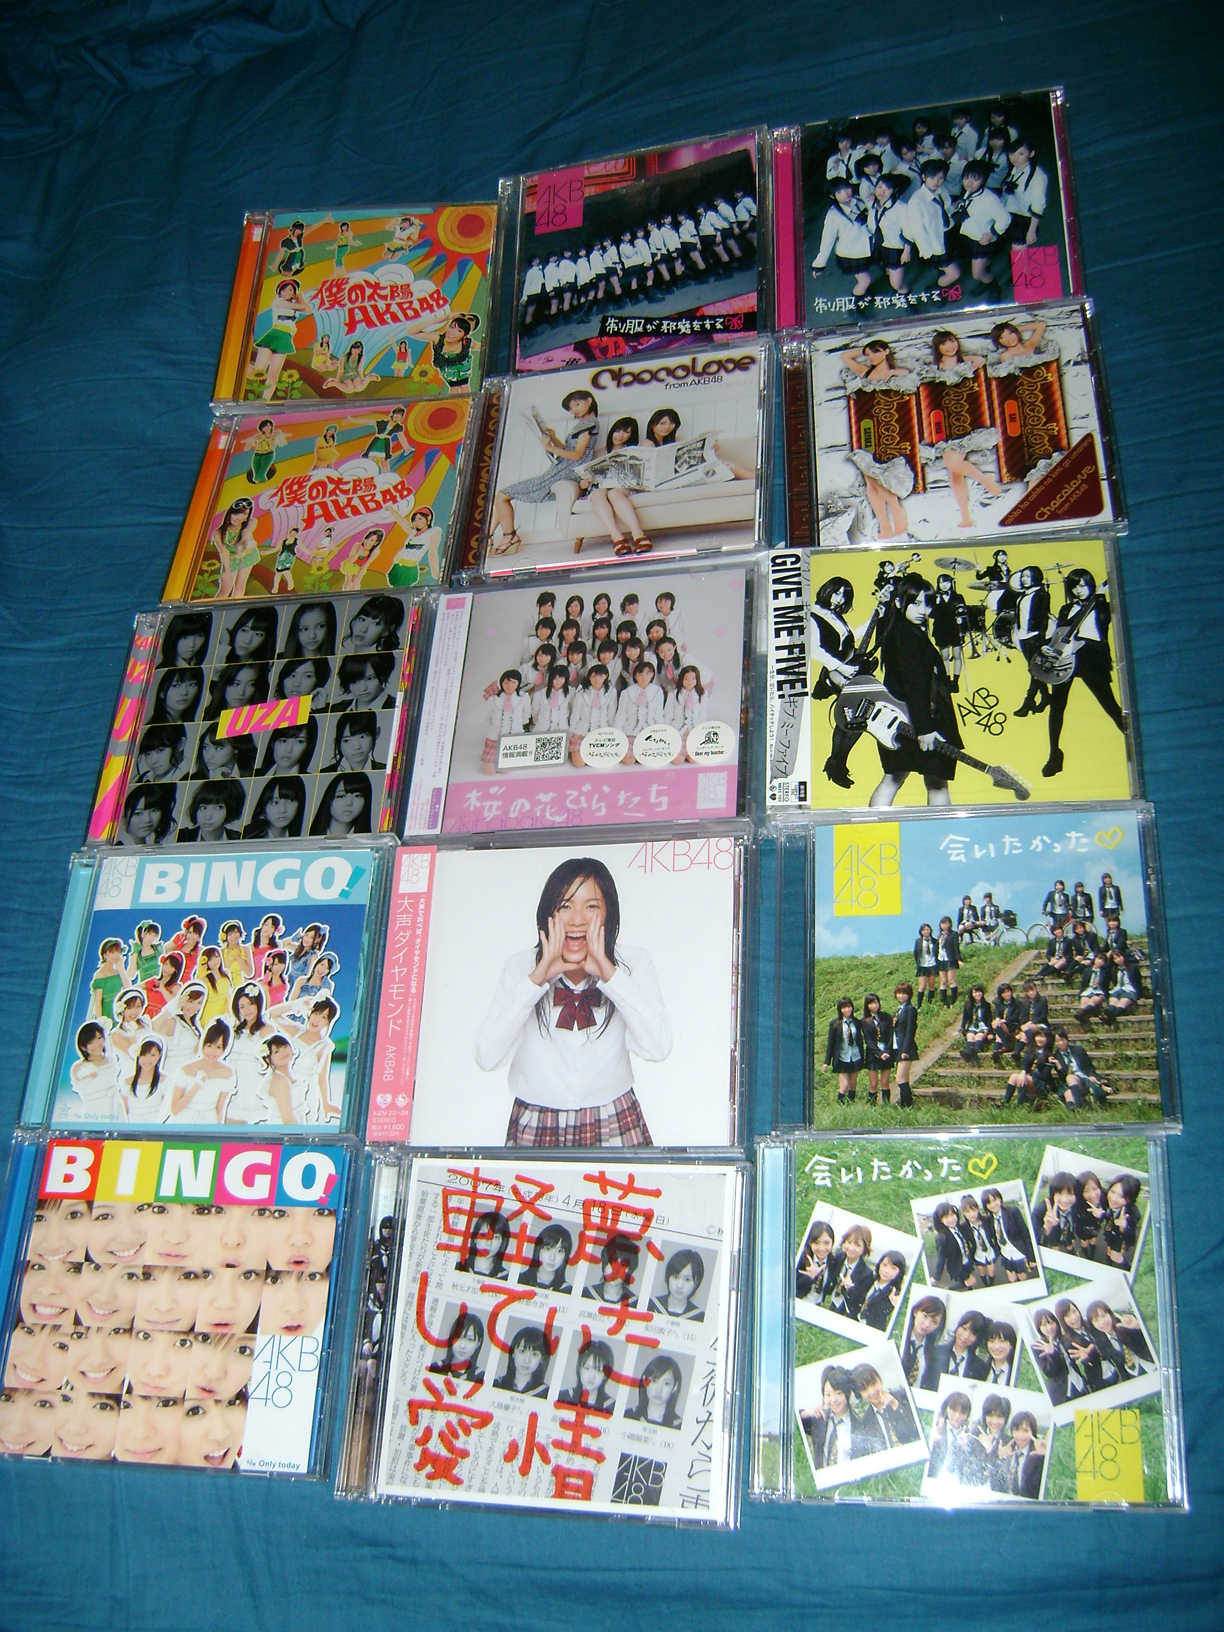 AKB CD 1 AKB48: A Musical Collection!  Part 1.